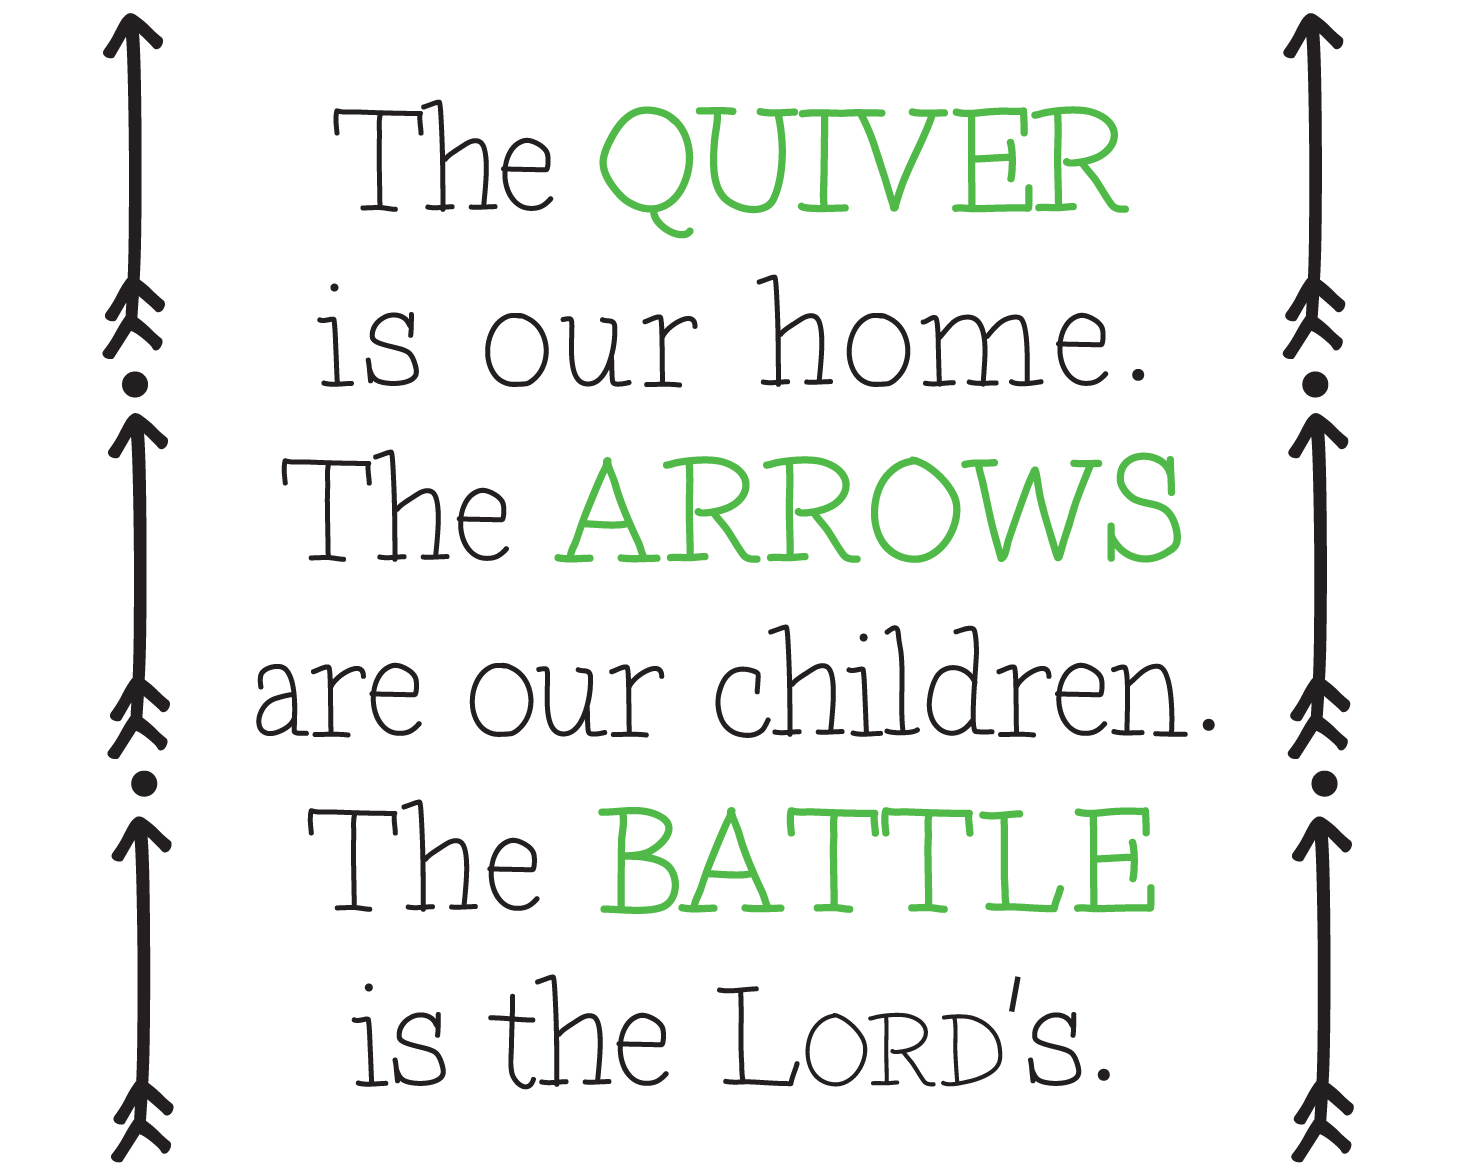 The quiver is our home; the arrows are our children; the battle is the Lord's.